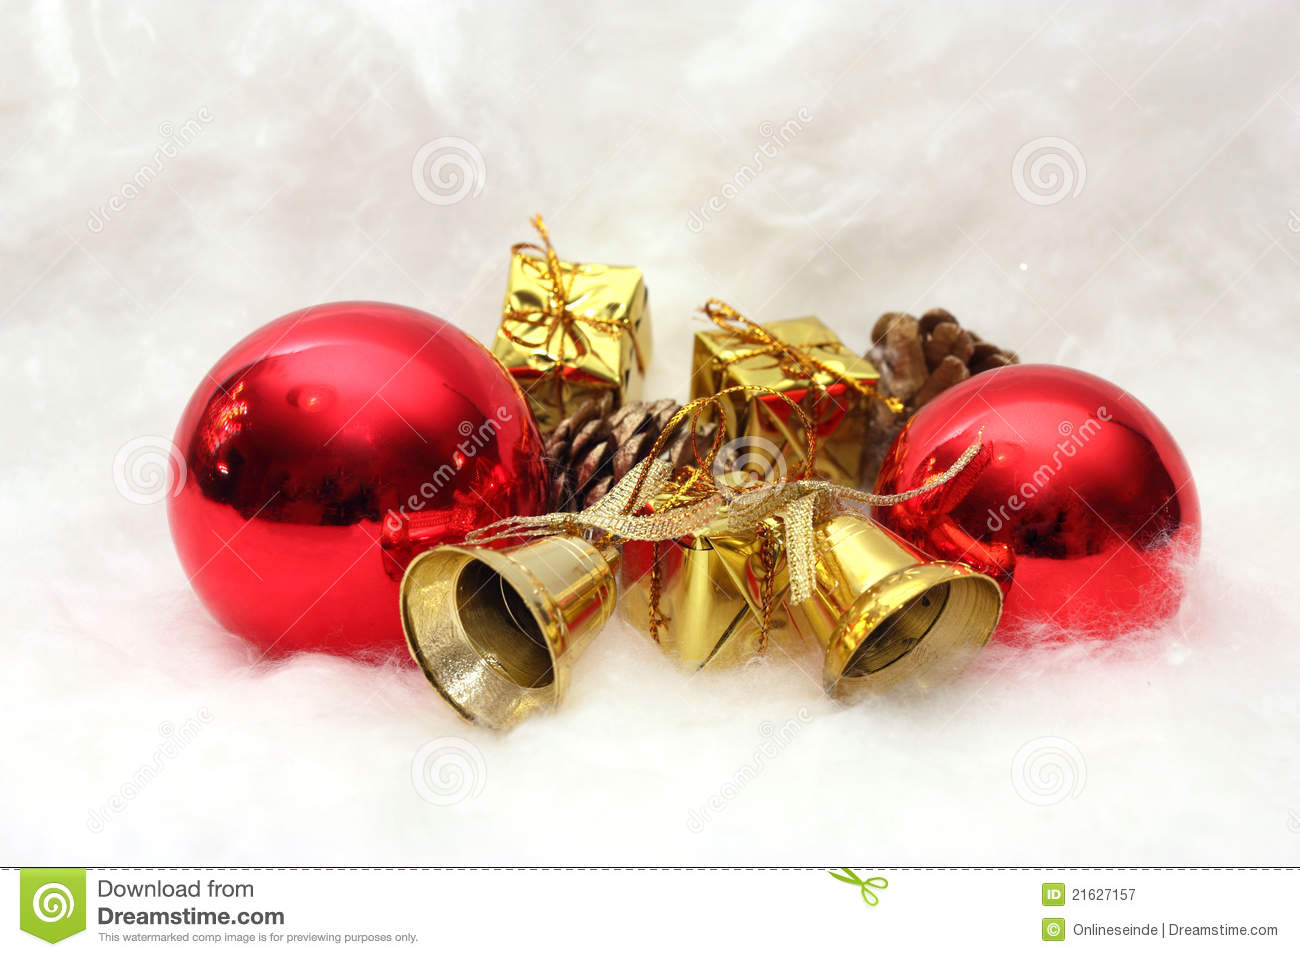 Christmas gifts and symbols stock image image of colorful